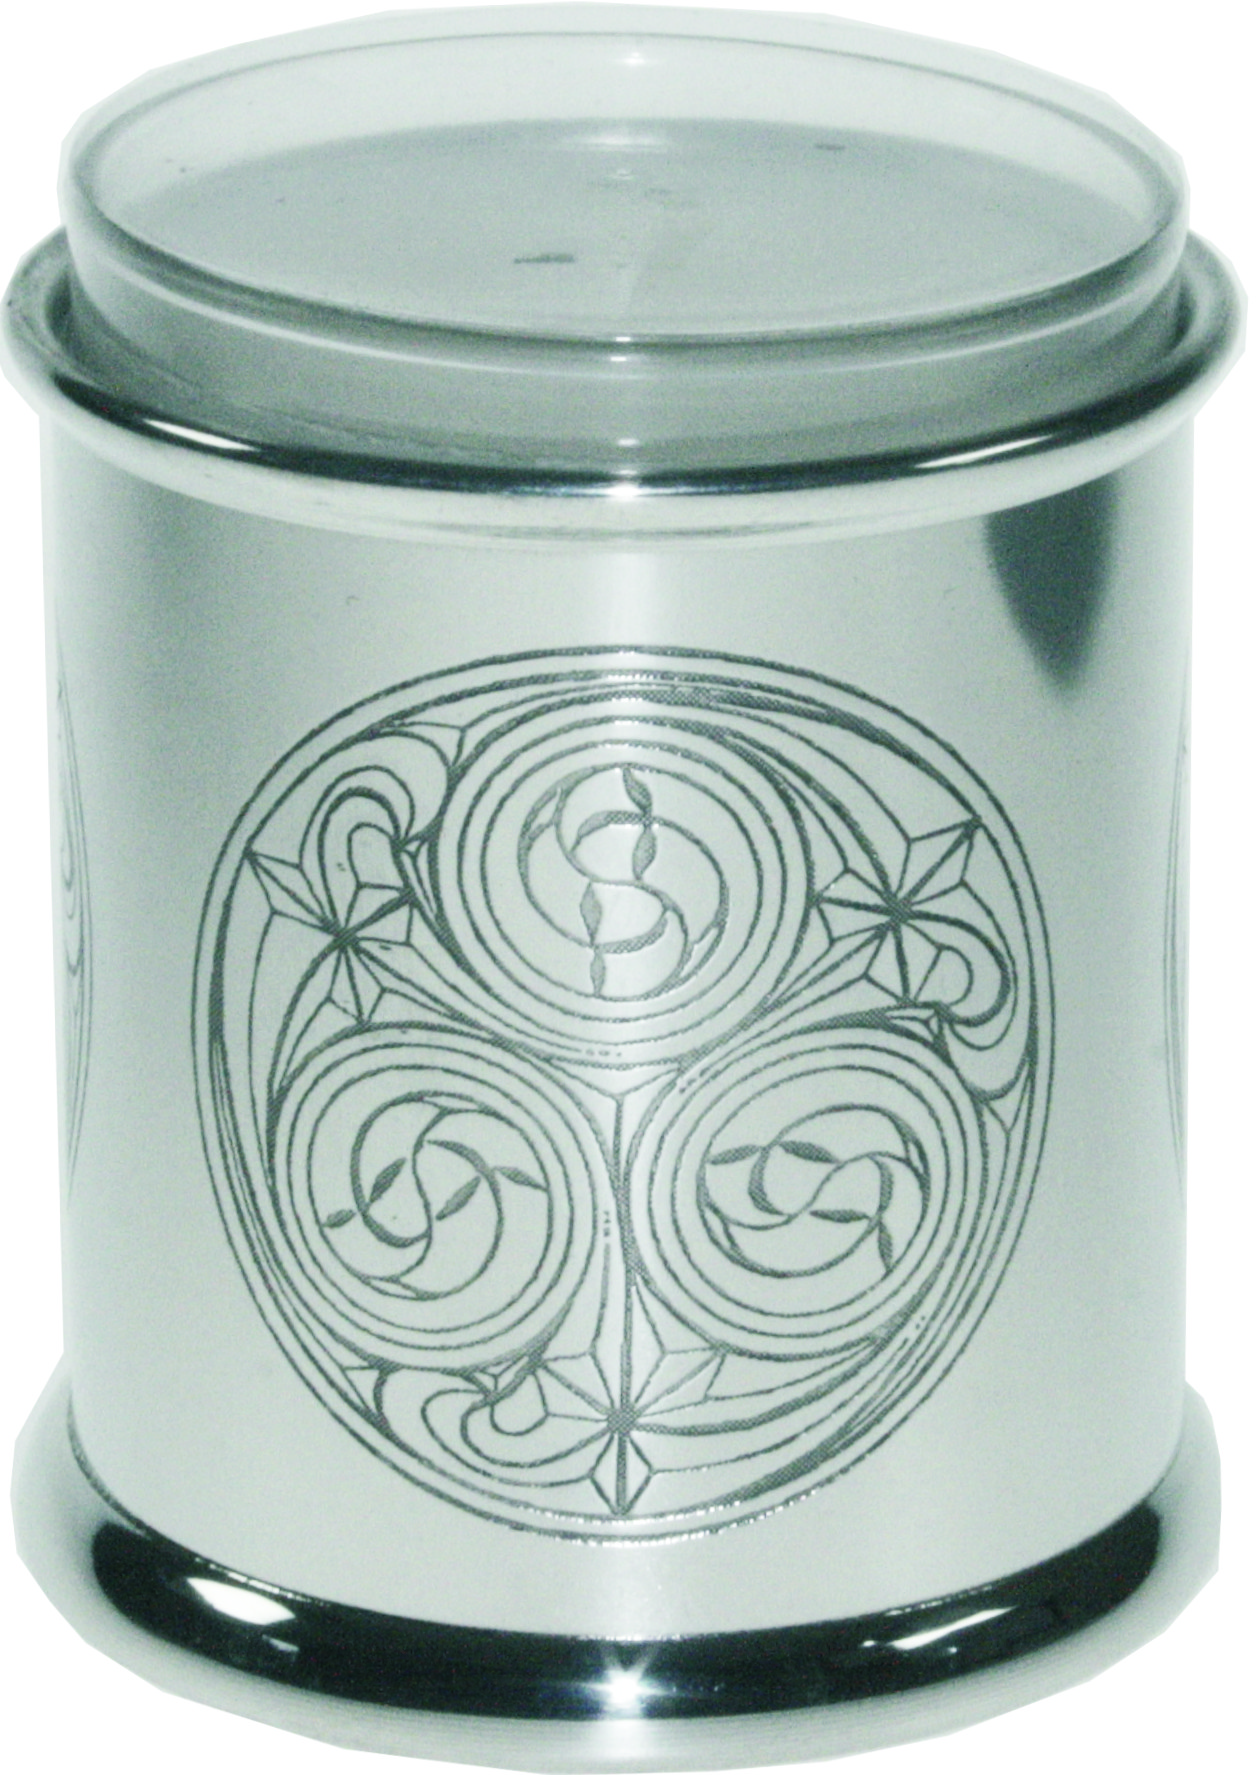 "Pewter Kells Candle Votive and Candle 9cm (3.5"")"